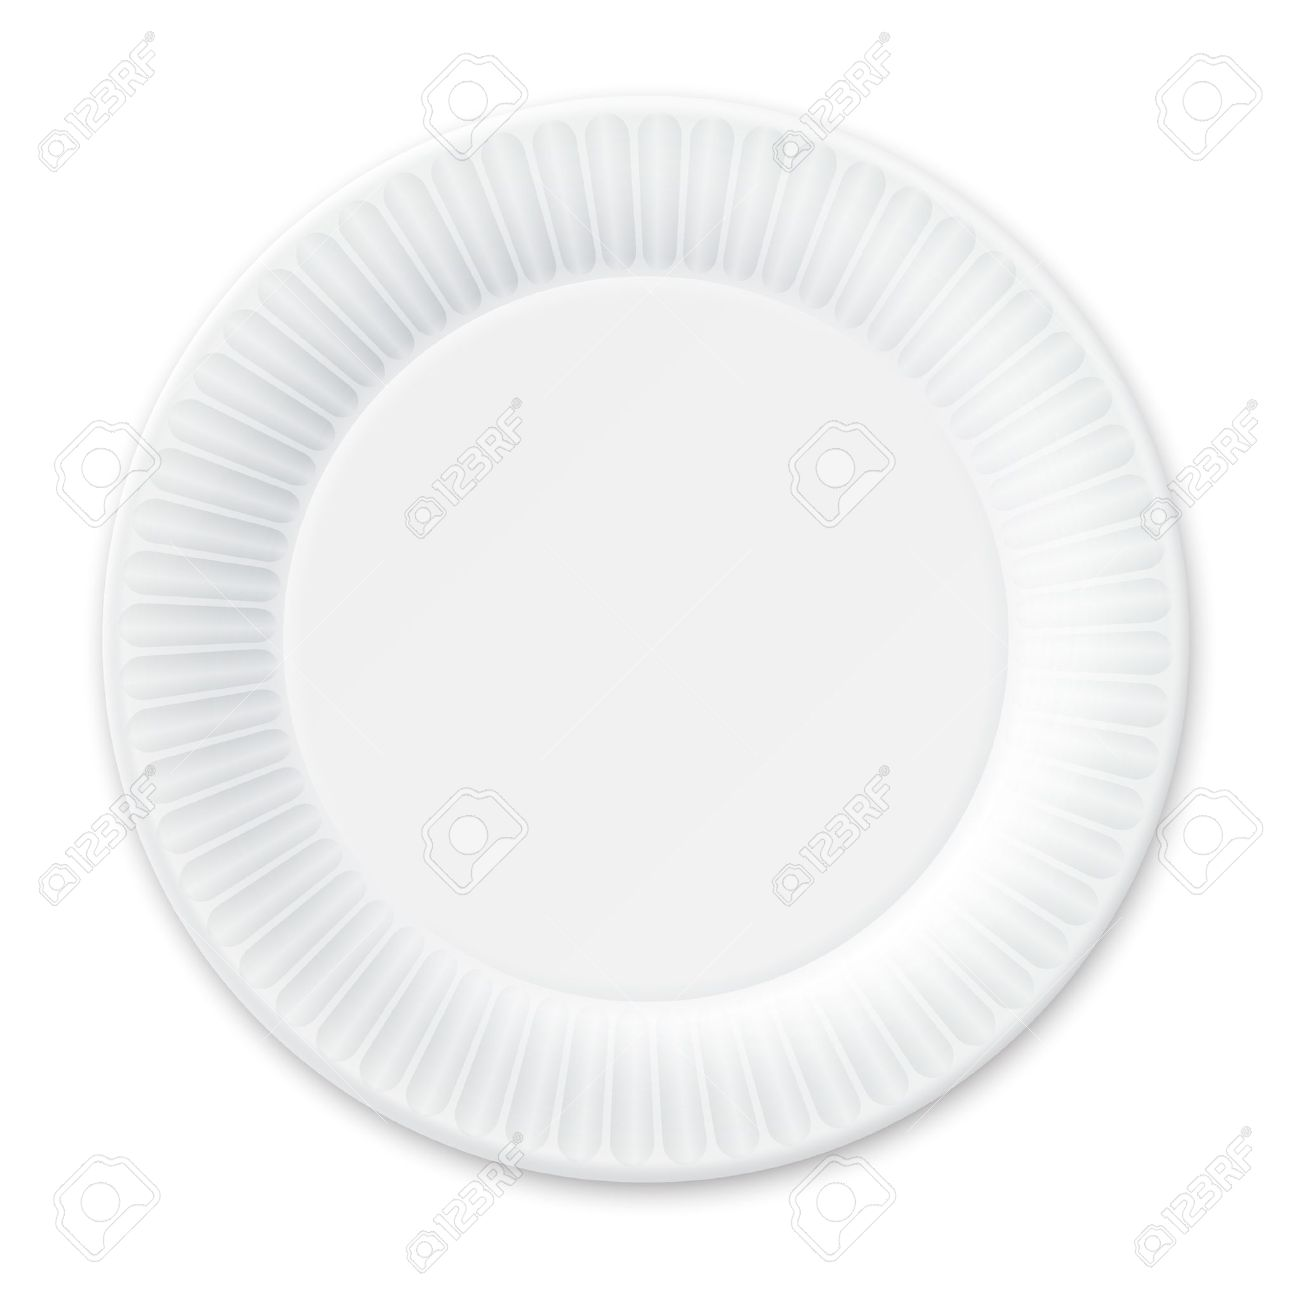 Disposable Paper Plate Isolated on White Stock Vector - 21685820  sc 1 st  123RF.com : disposable paper plates - pezcame.com